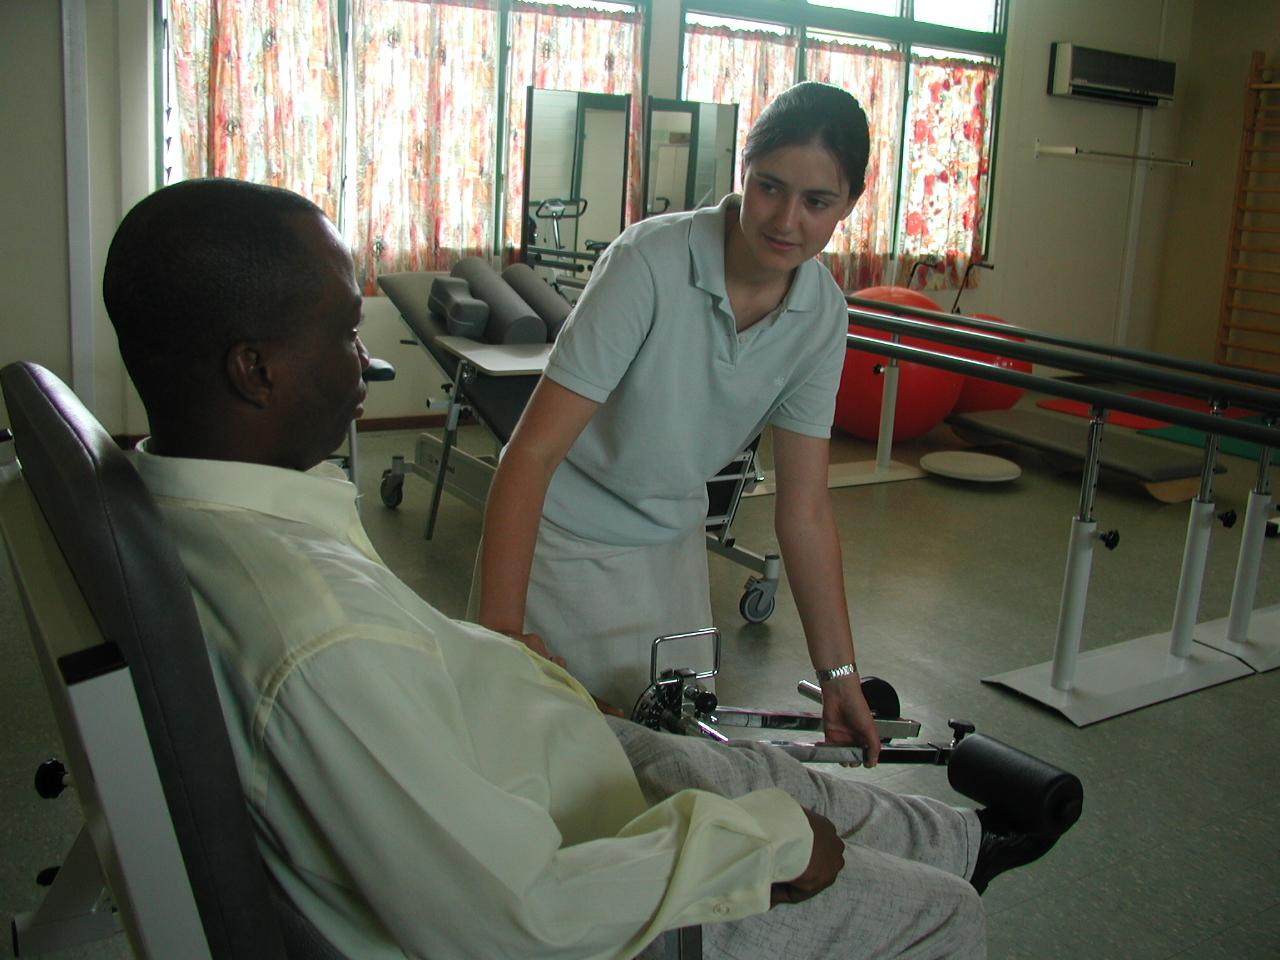 An intern from Projects Abroad is pictured helping a man stretch as part of her physiotherapy internship in Ghana.